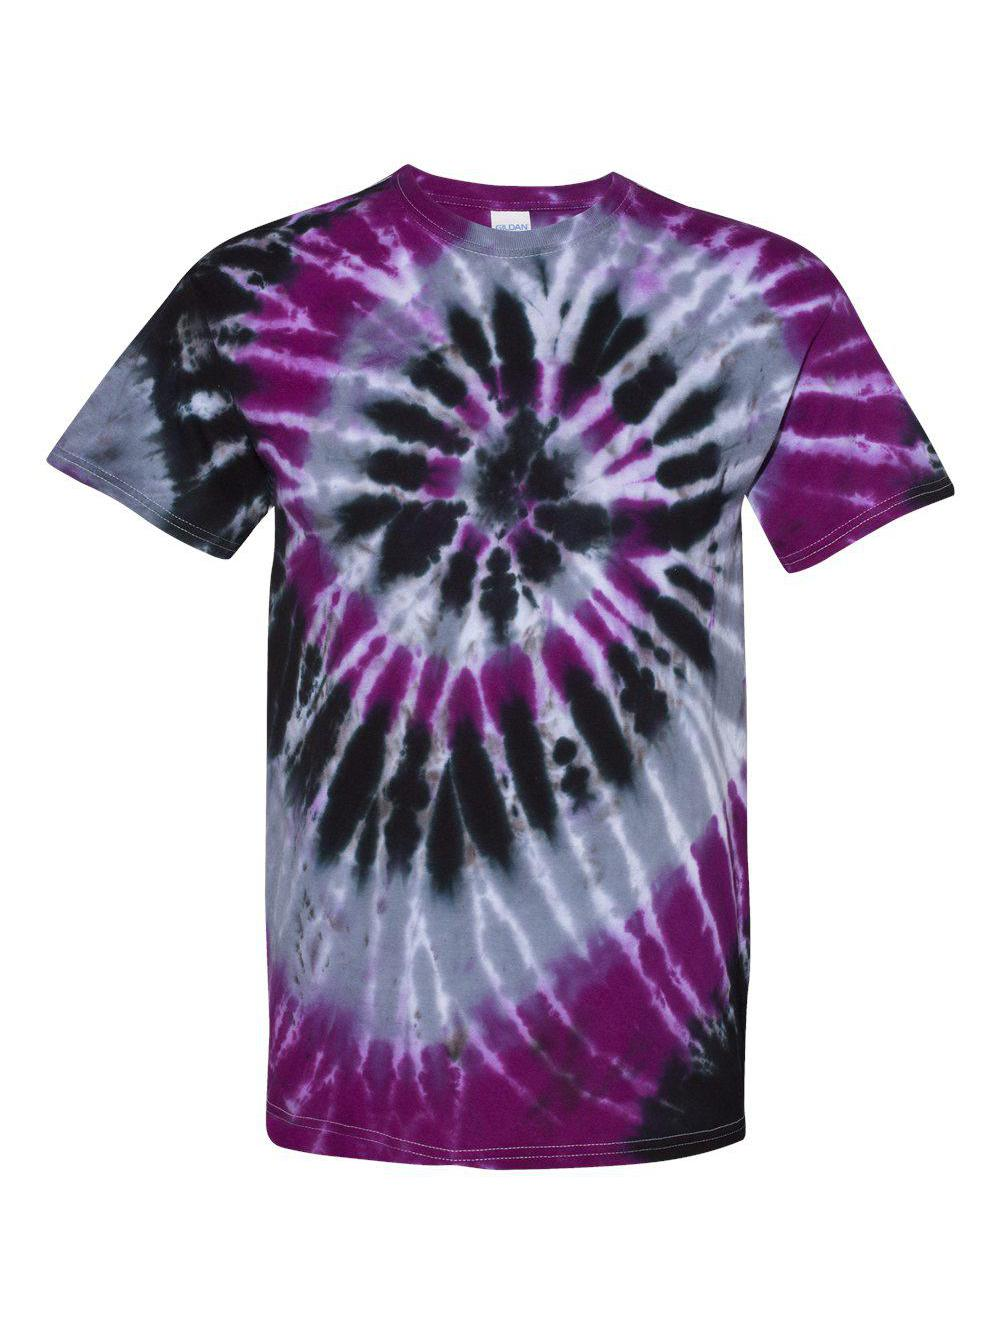 Dyenomite-Multi-Color-Spiral-Short-Sleeve-T-Shirt-200MS thumbnail 35